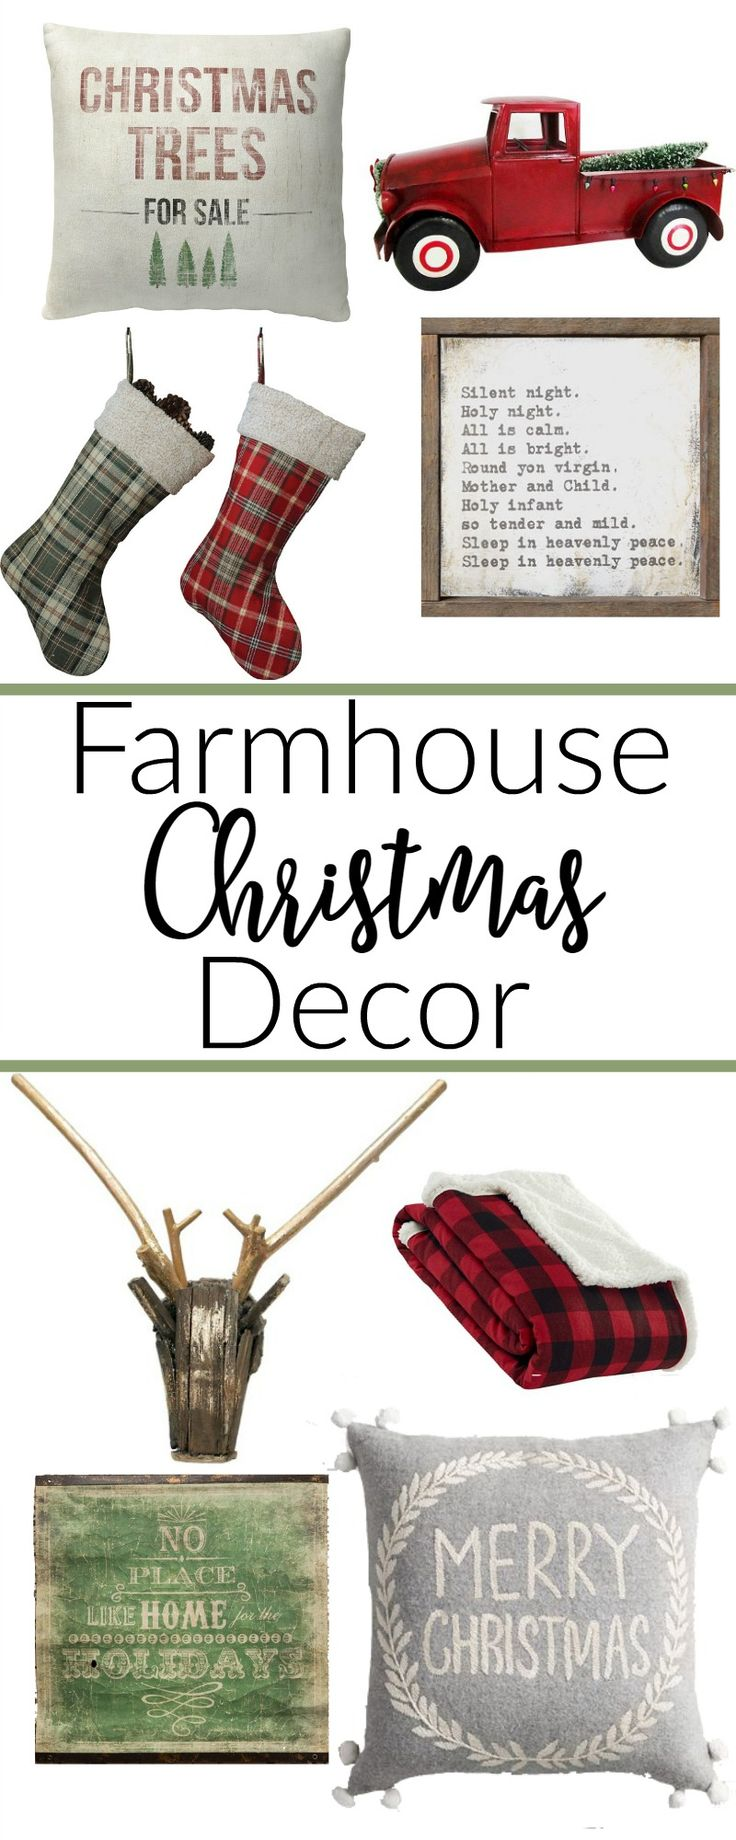 Your shopping guide to all things farmhouse Christmas decor. Put the perfect touch for your Christmas decor, or add a little farmhouse flair to your home.